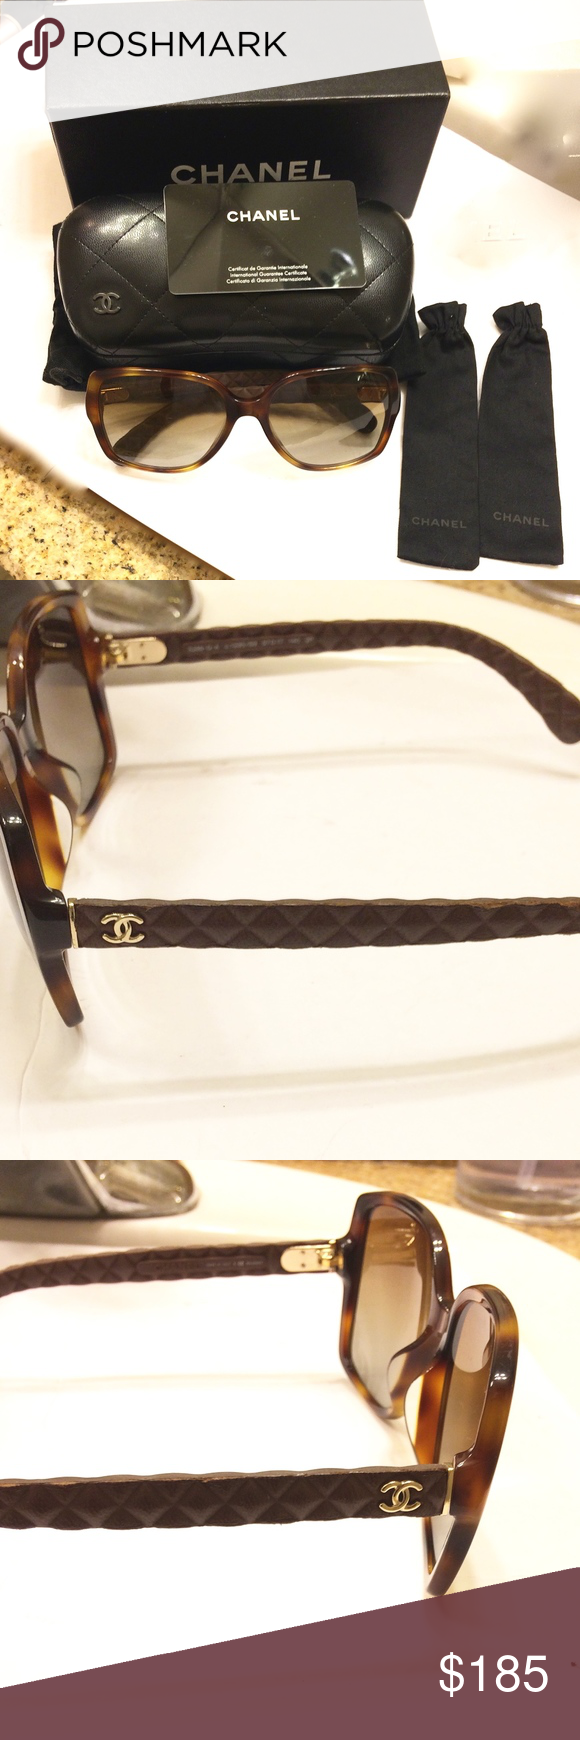 CHANEL Sunglasses CC Logo in good used condition.  the handles have scuffs, see photo #6.  it comes with whole bunch of stuff as you can see.  even the handles have their own dust bags. CHANEL Accessories Sunglasses